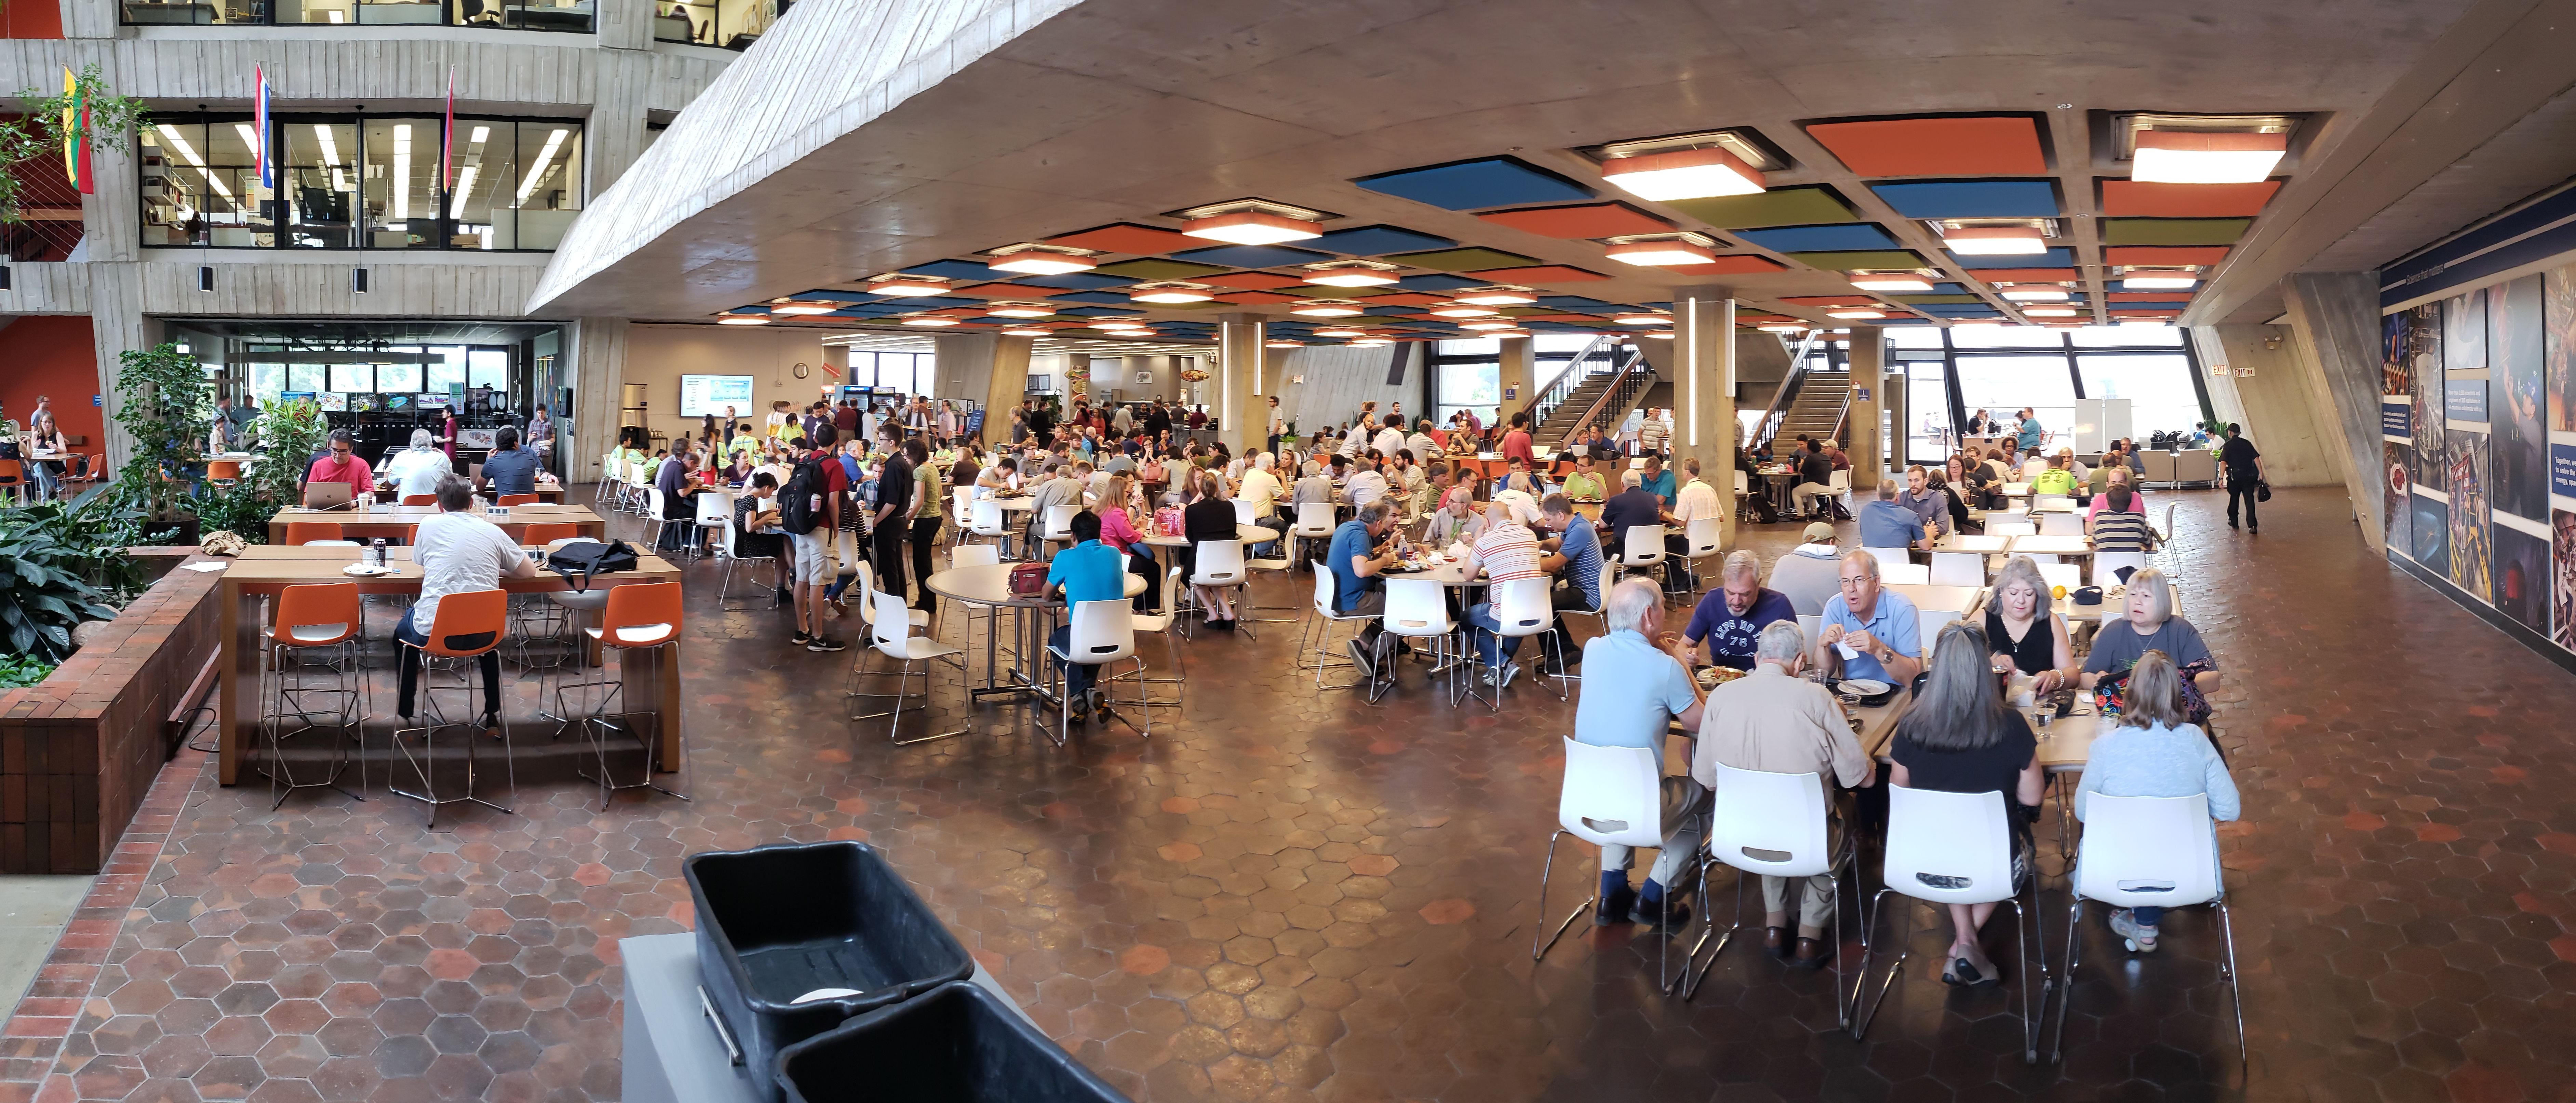 The cafeteria was packed at noon on Wednesday, Aug. 1. people, lab life Photo: Elliott McCrory